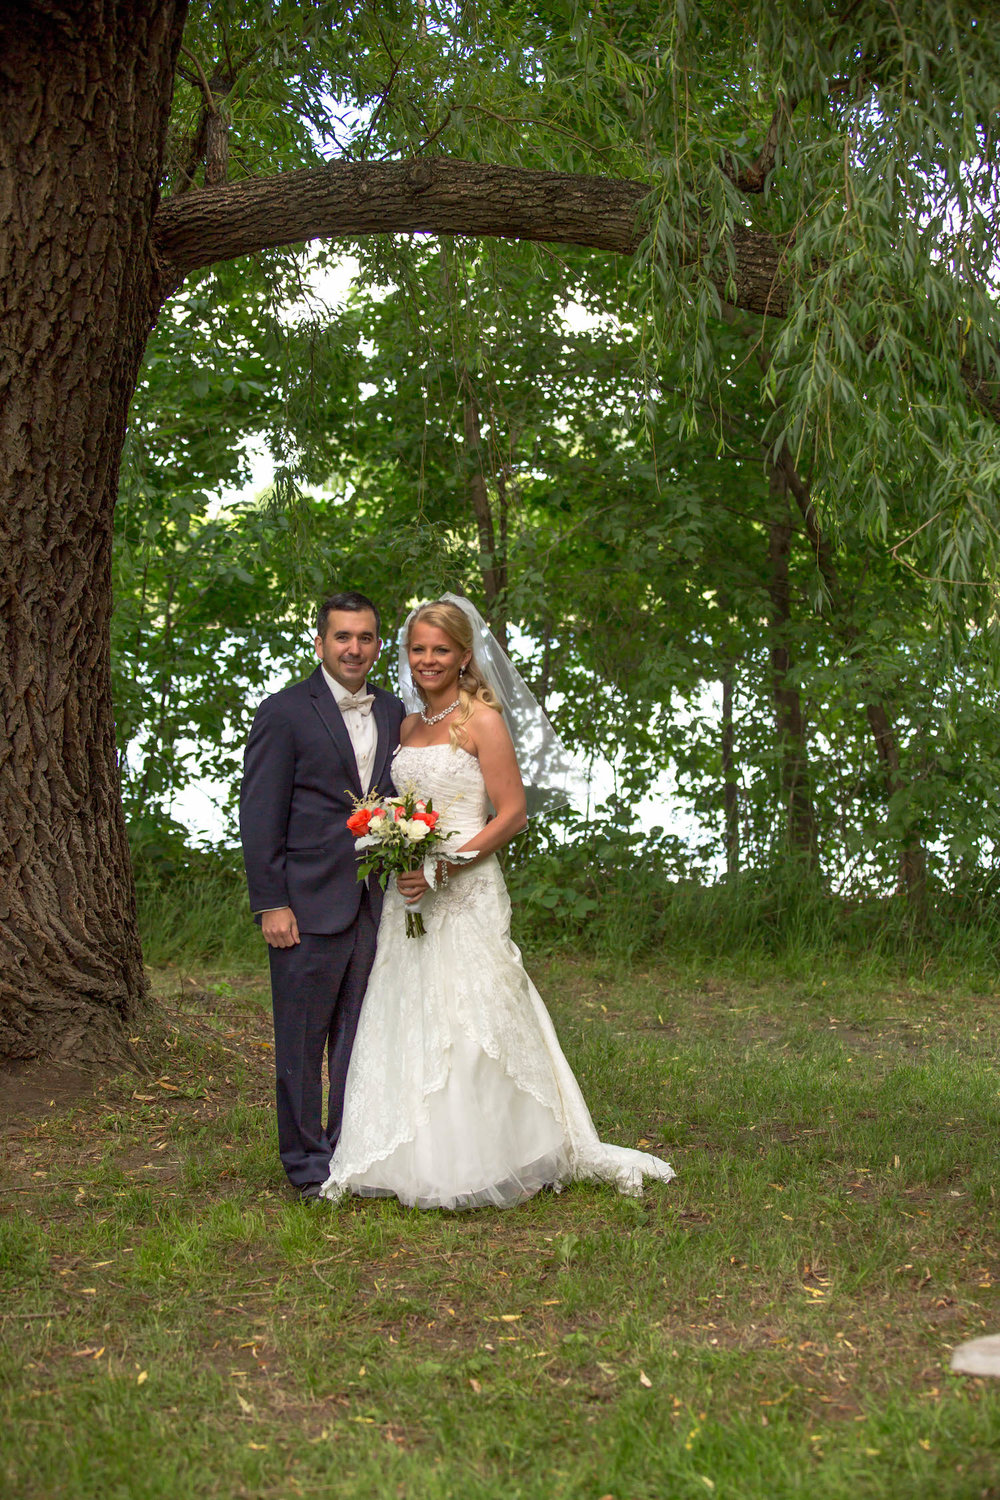 Cindyrellas Garden, outdoor lake ceremony in Minnesota, woods photo